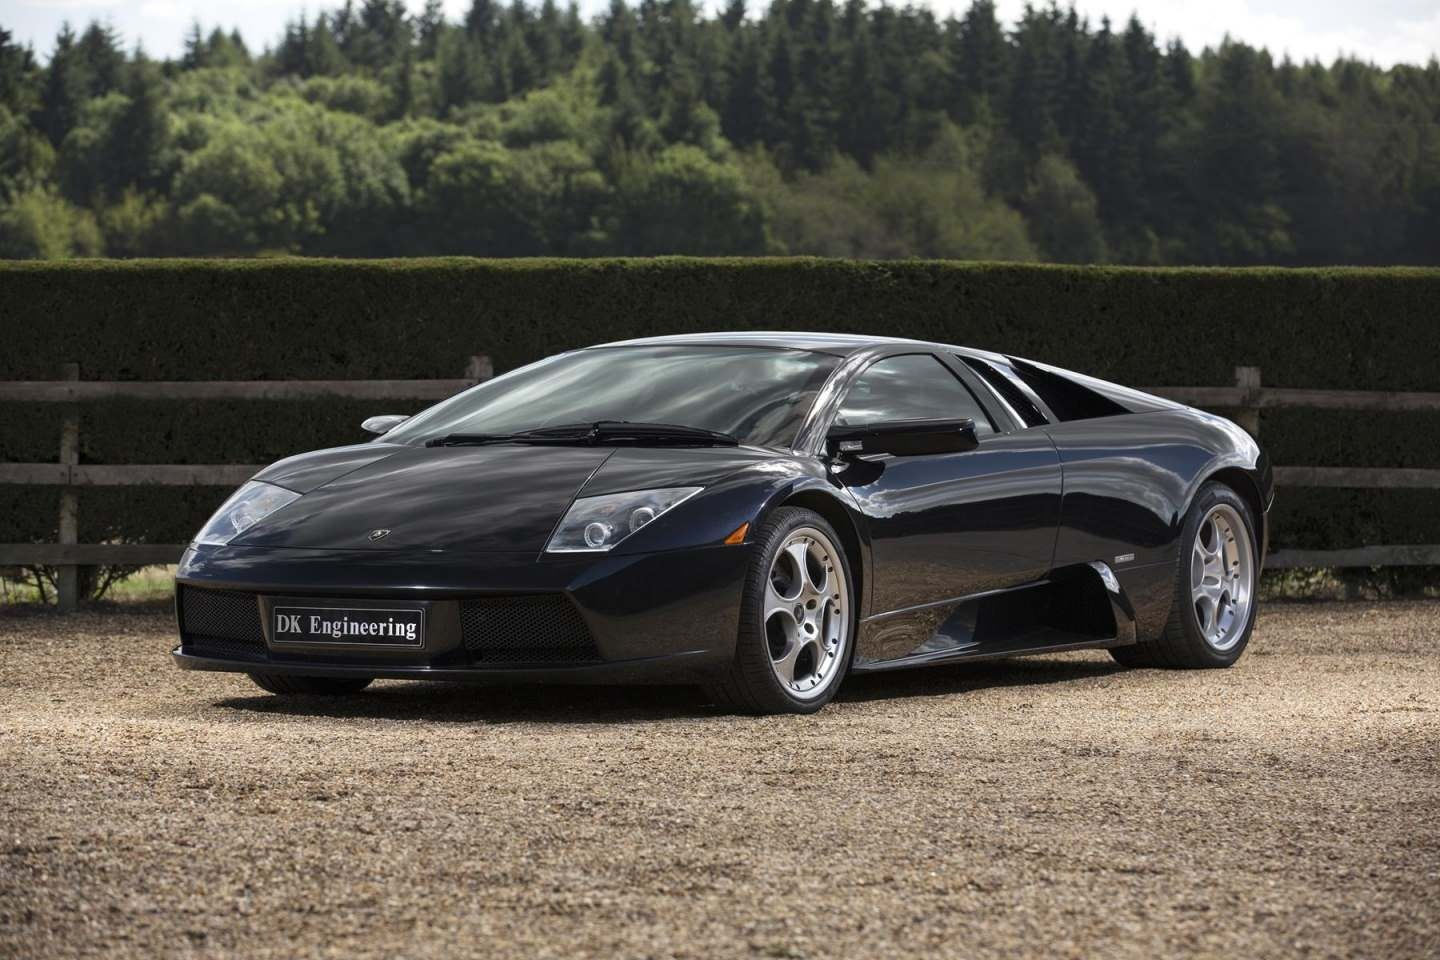 Lamborghini Murcielago For Sale Vehicle Sales Dk Engineering